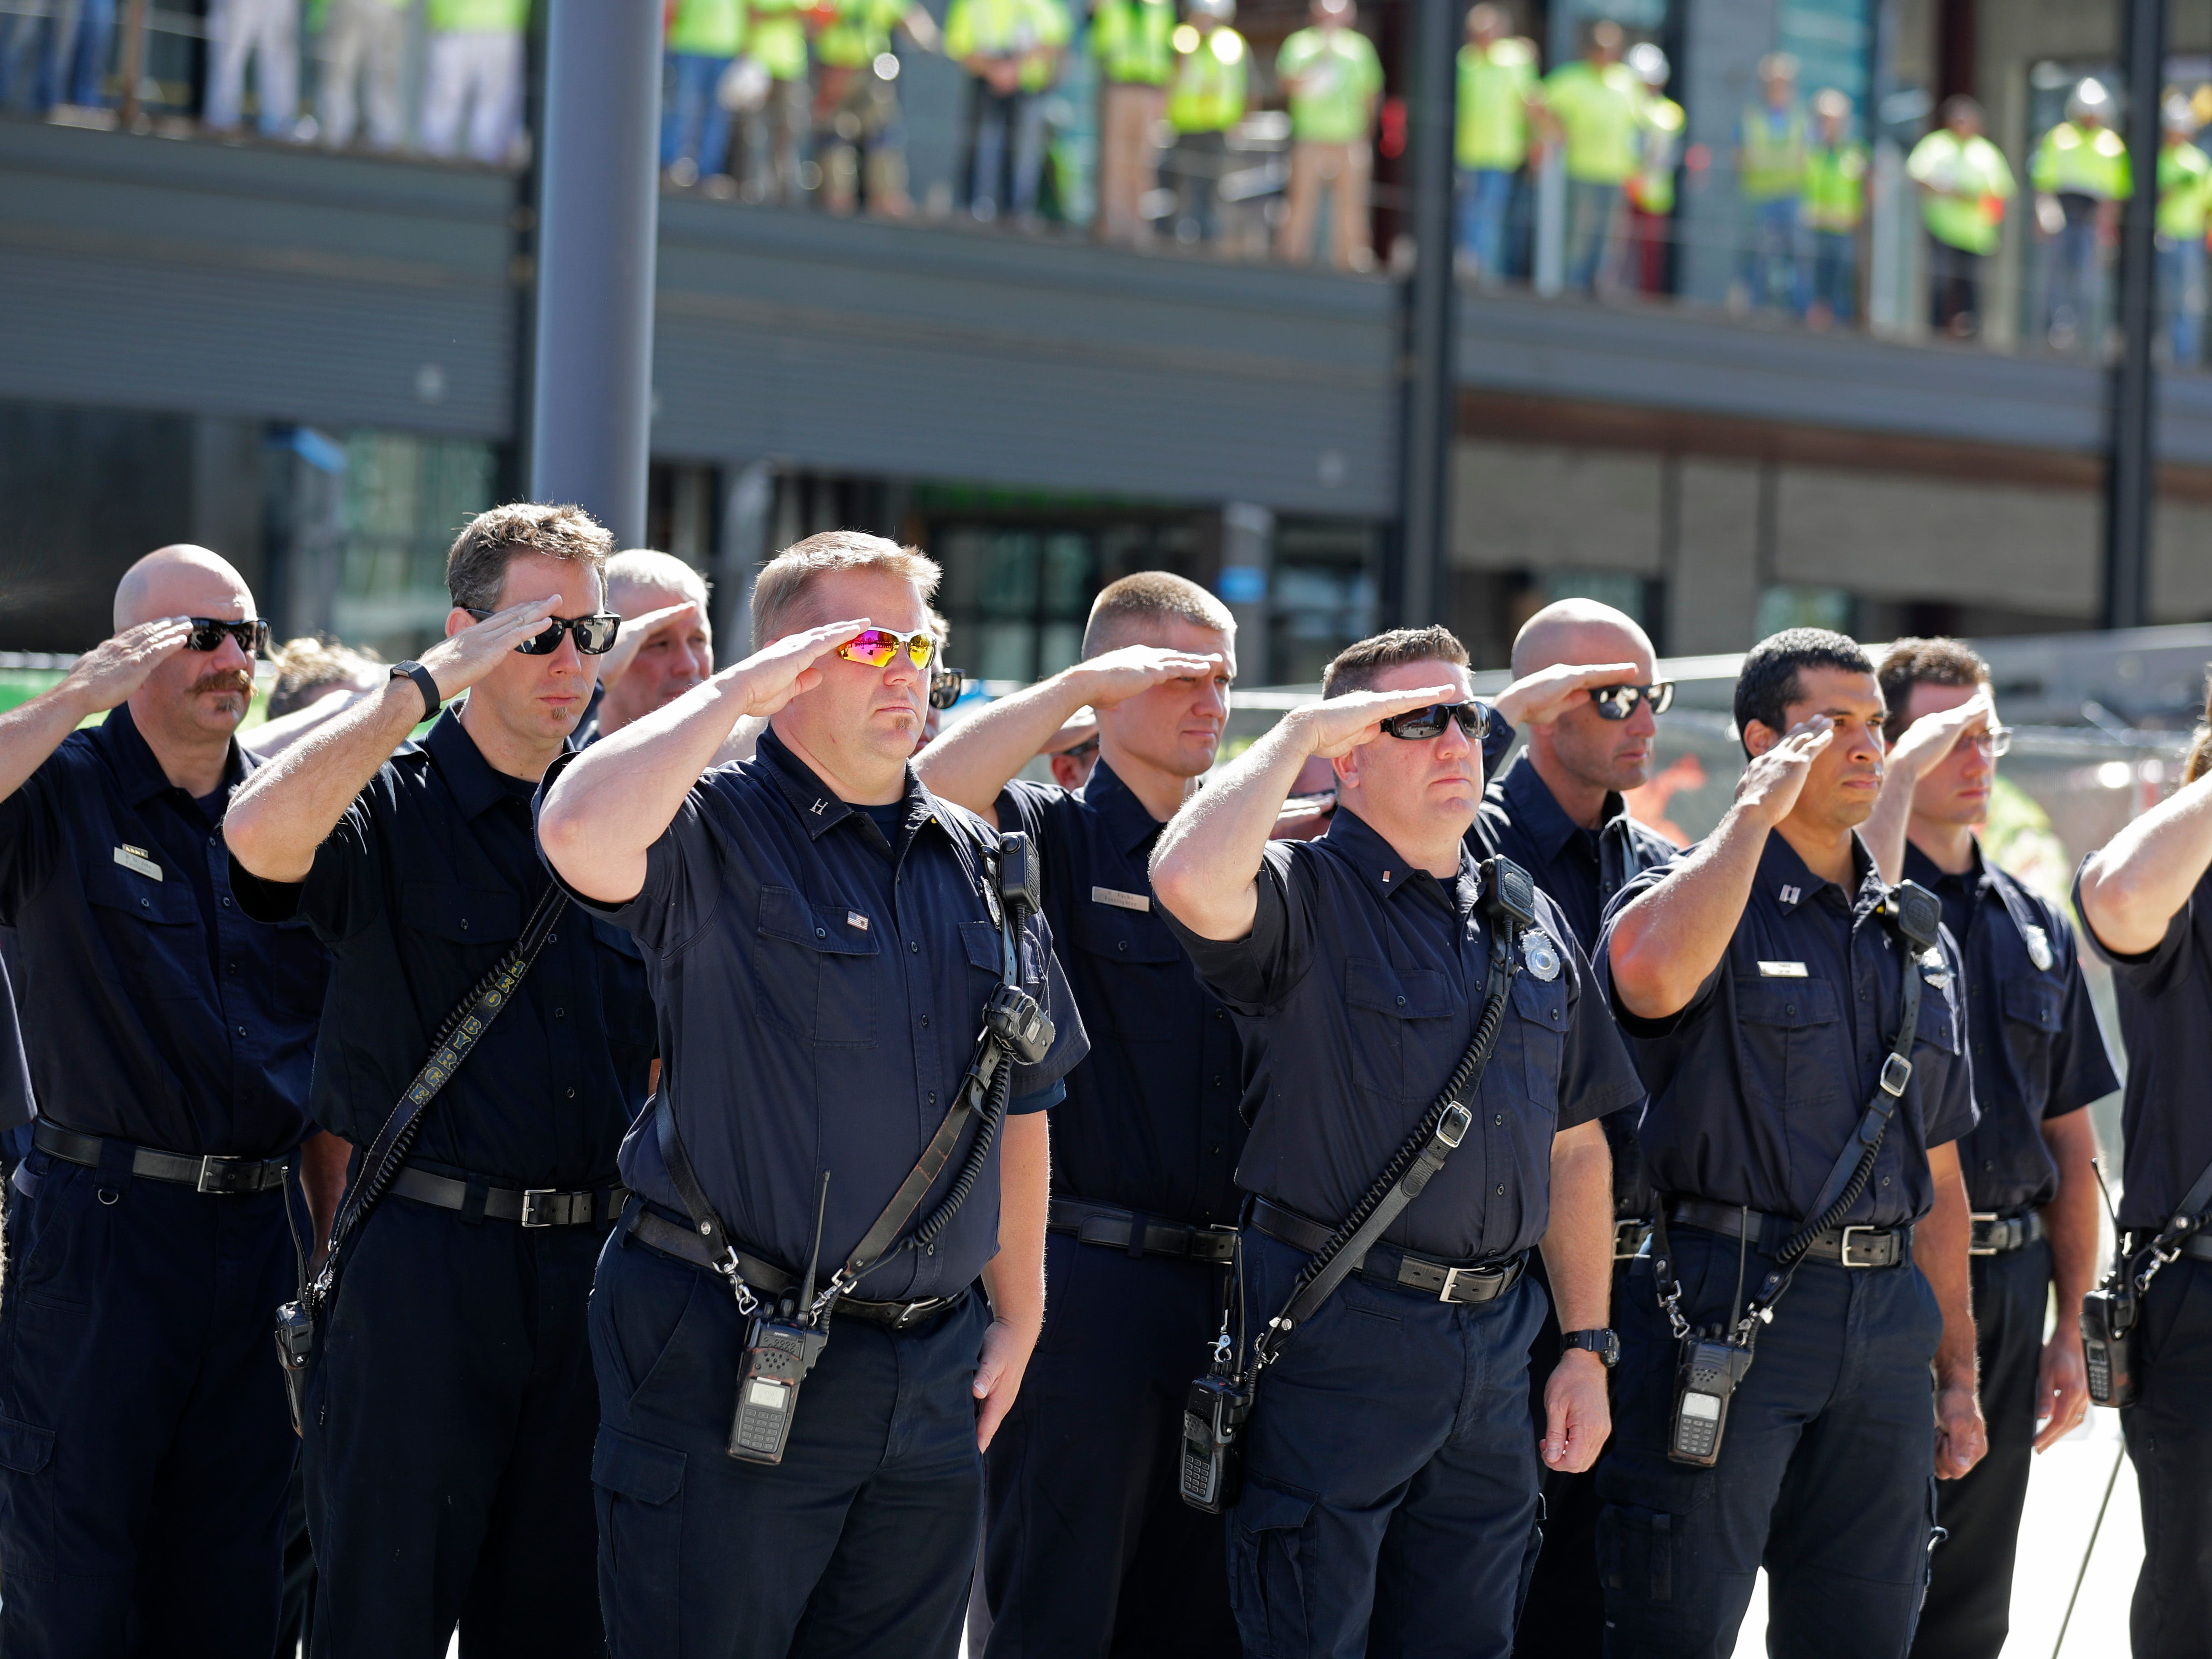 Firefighters salute as the names of firefighters who lost their lives responding to the Sept. 11, 2001, attacks on the World Trade Center in New York are read.